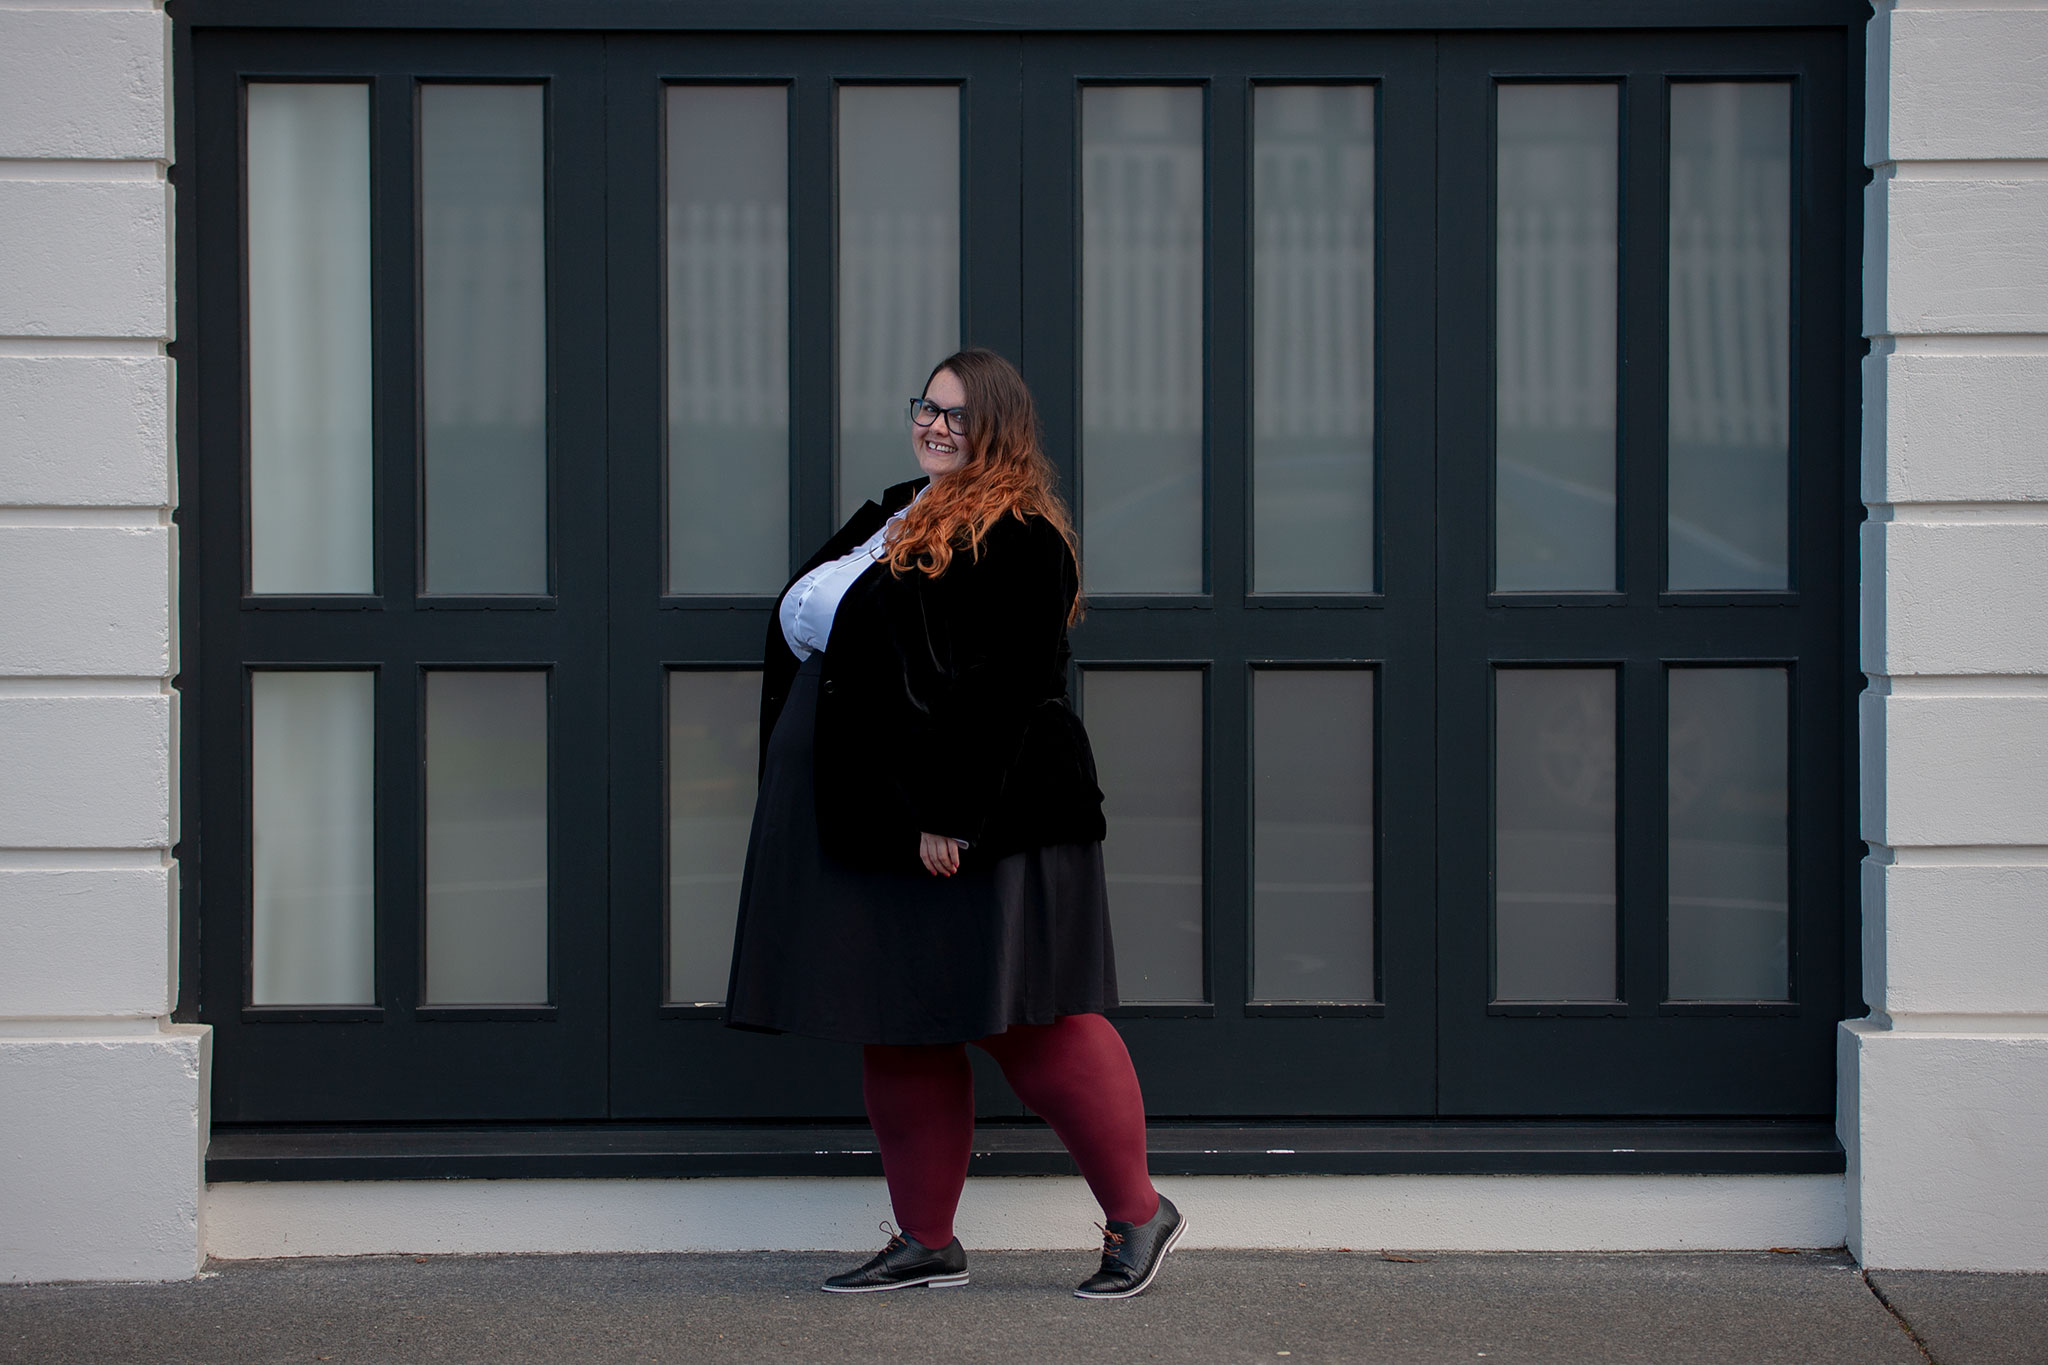 New Zealand plus size blogger Meagan Kerr wears 17 Sundays Basic Longline White Button Up Shirt, Lane Bryant Ponte Circle Skirt, Sara Velvet Blazer from Ezibuy, Pamela Mann 90 Denier Maxi Opaque Plus Size Tights from The Tight Spot, Emerge Anaheim Cut-out Lace Up Court Flat from Ezibuy, Alexa Glasses from Specsavers. Photo by Doug Peters / Ambient Light